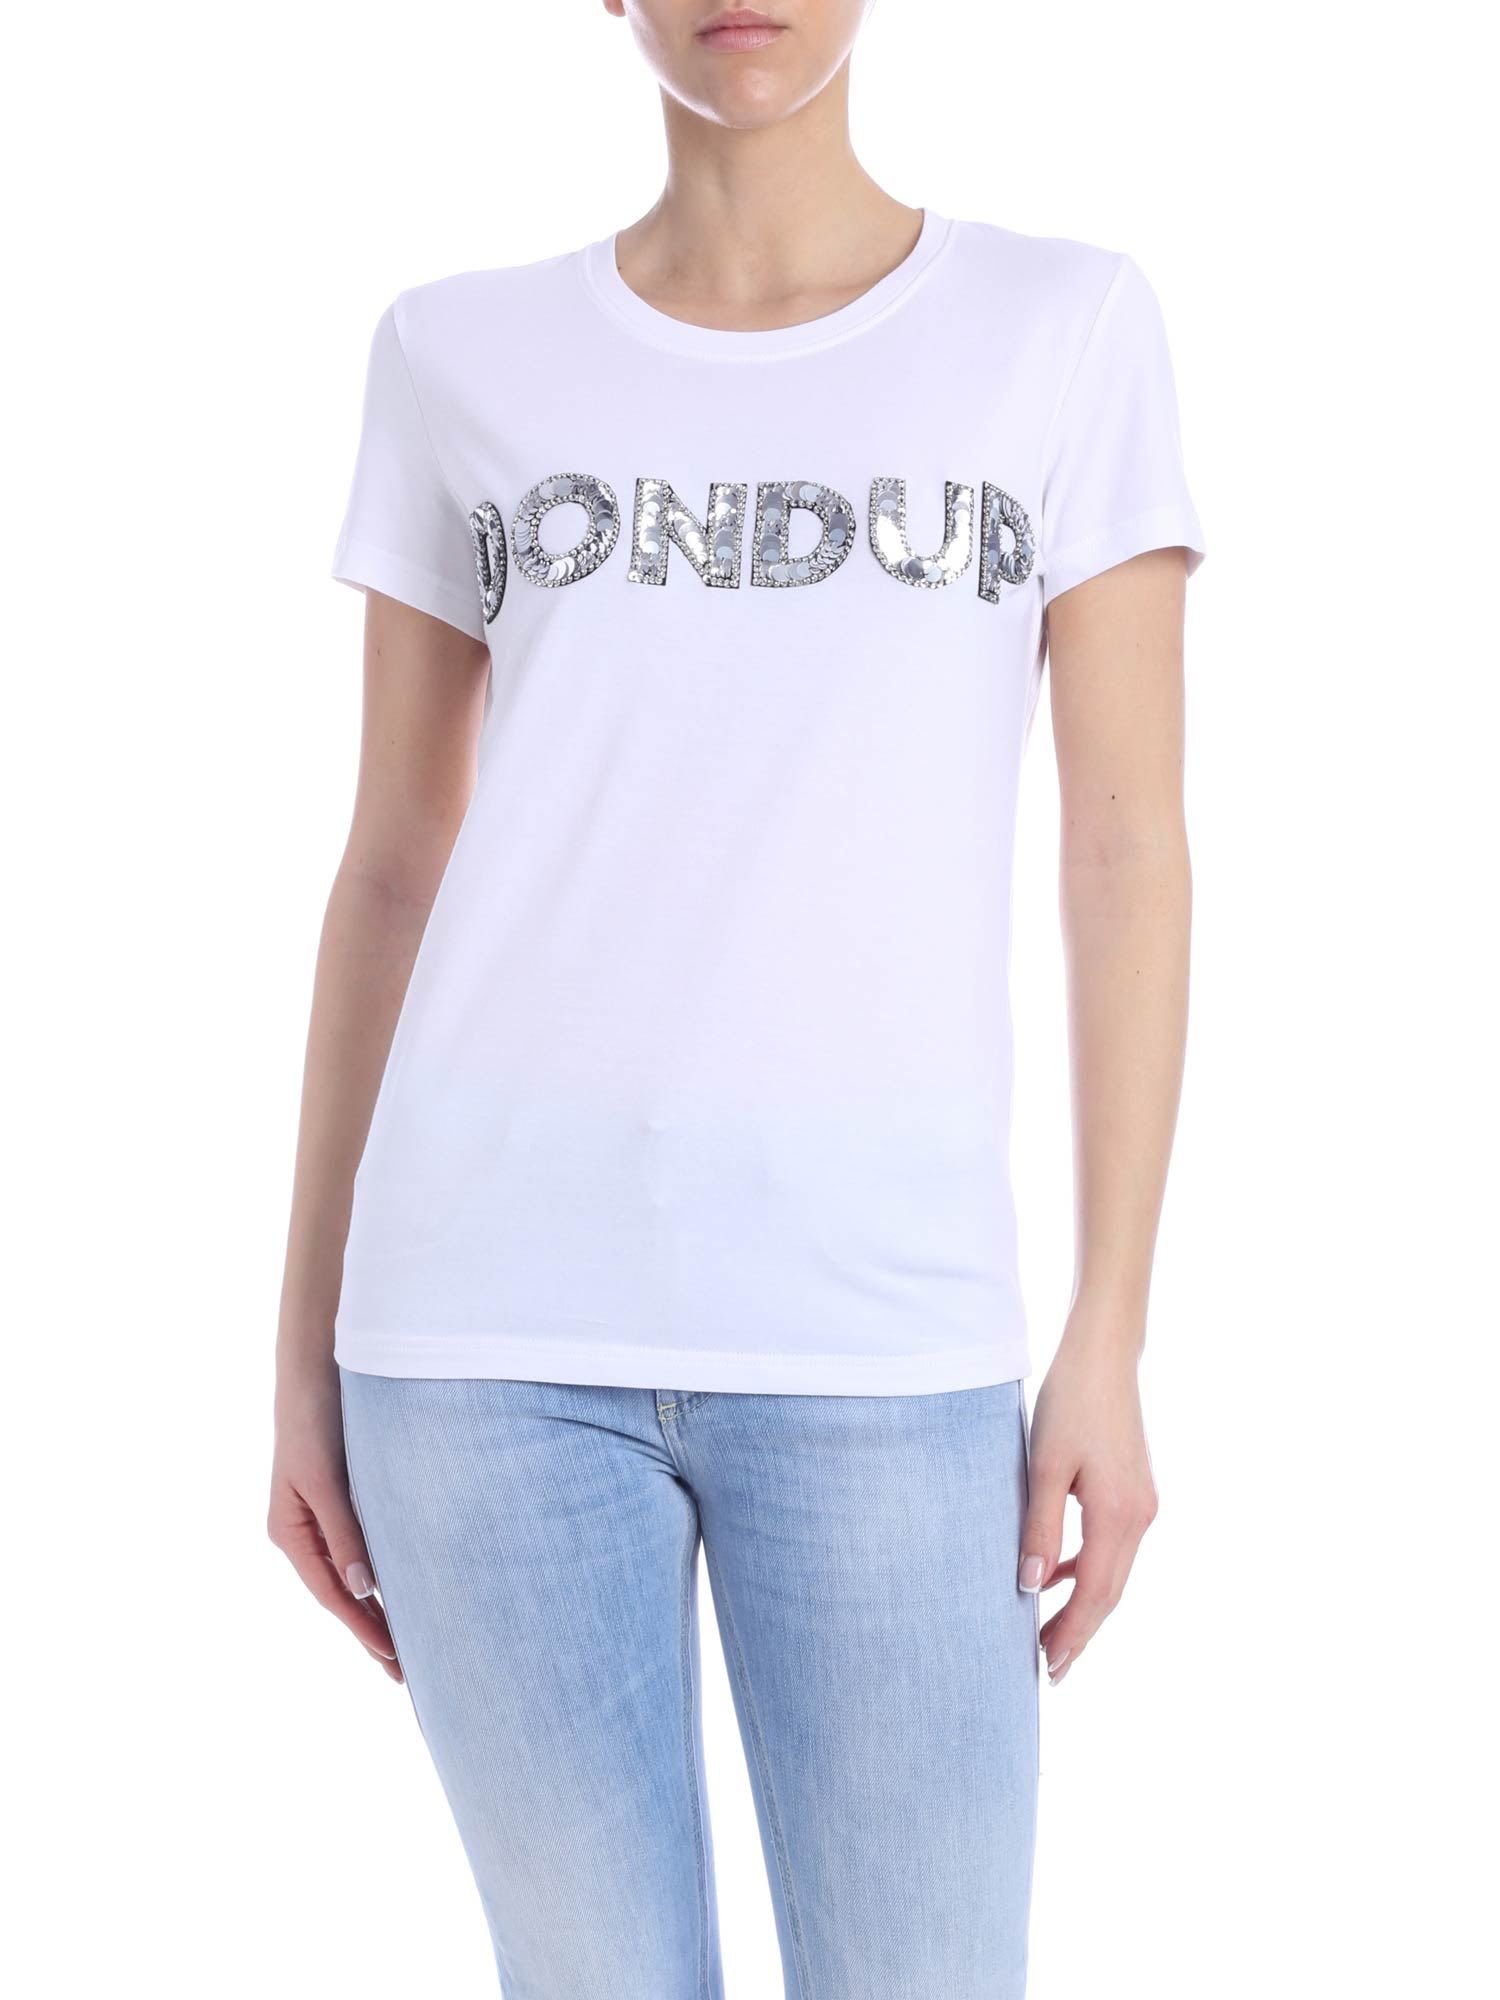 Don Dup Sequins Logo Tee